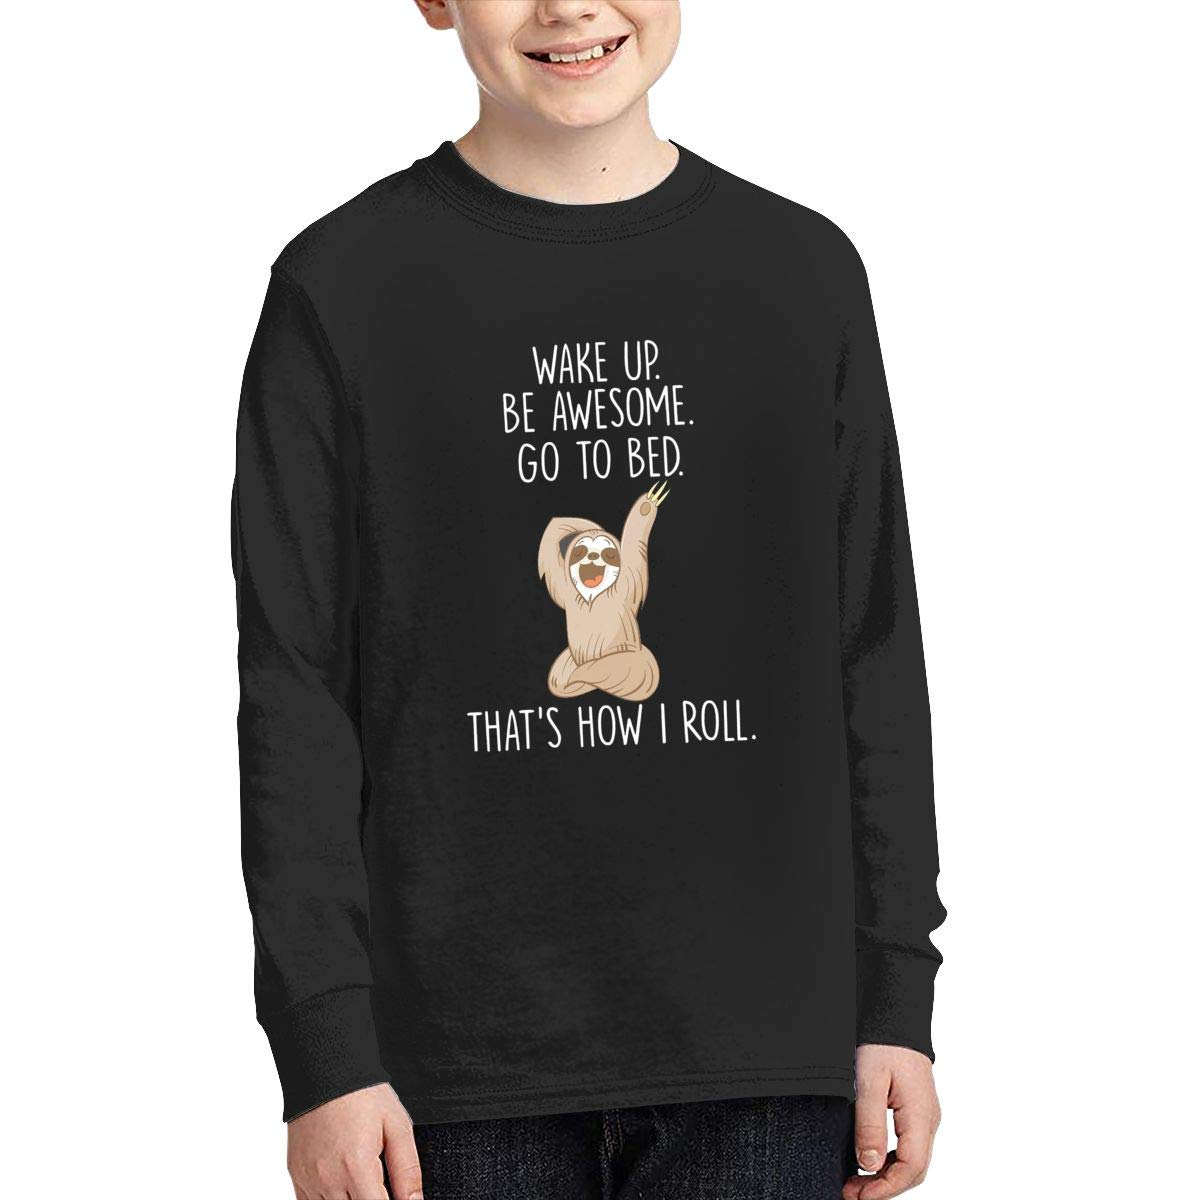 Funny Lazy Sloth Be Awesome Youth Long Sleeve Moisture Wicking Athletic T Shirts Casual Tee Graphic Tops for Teen Boys Girls